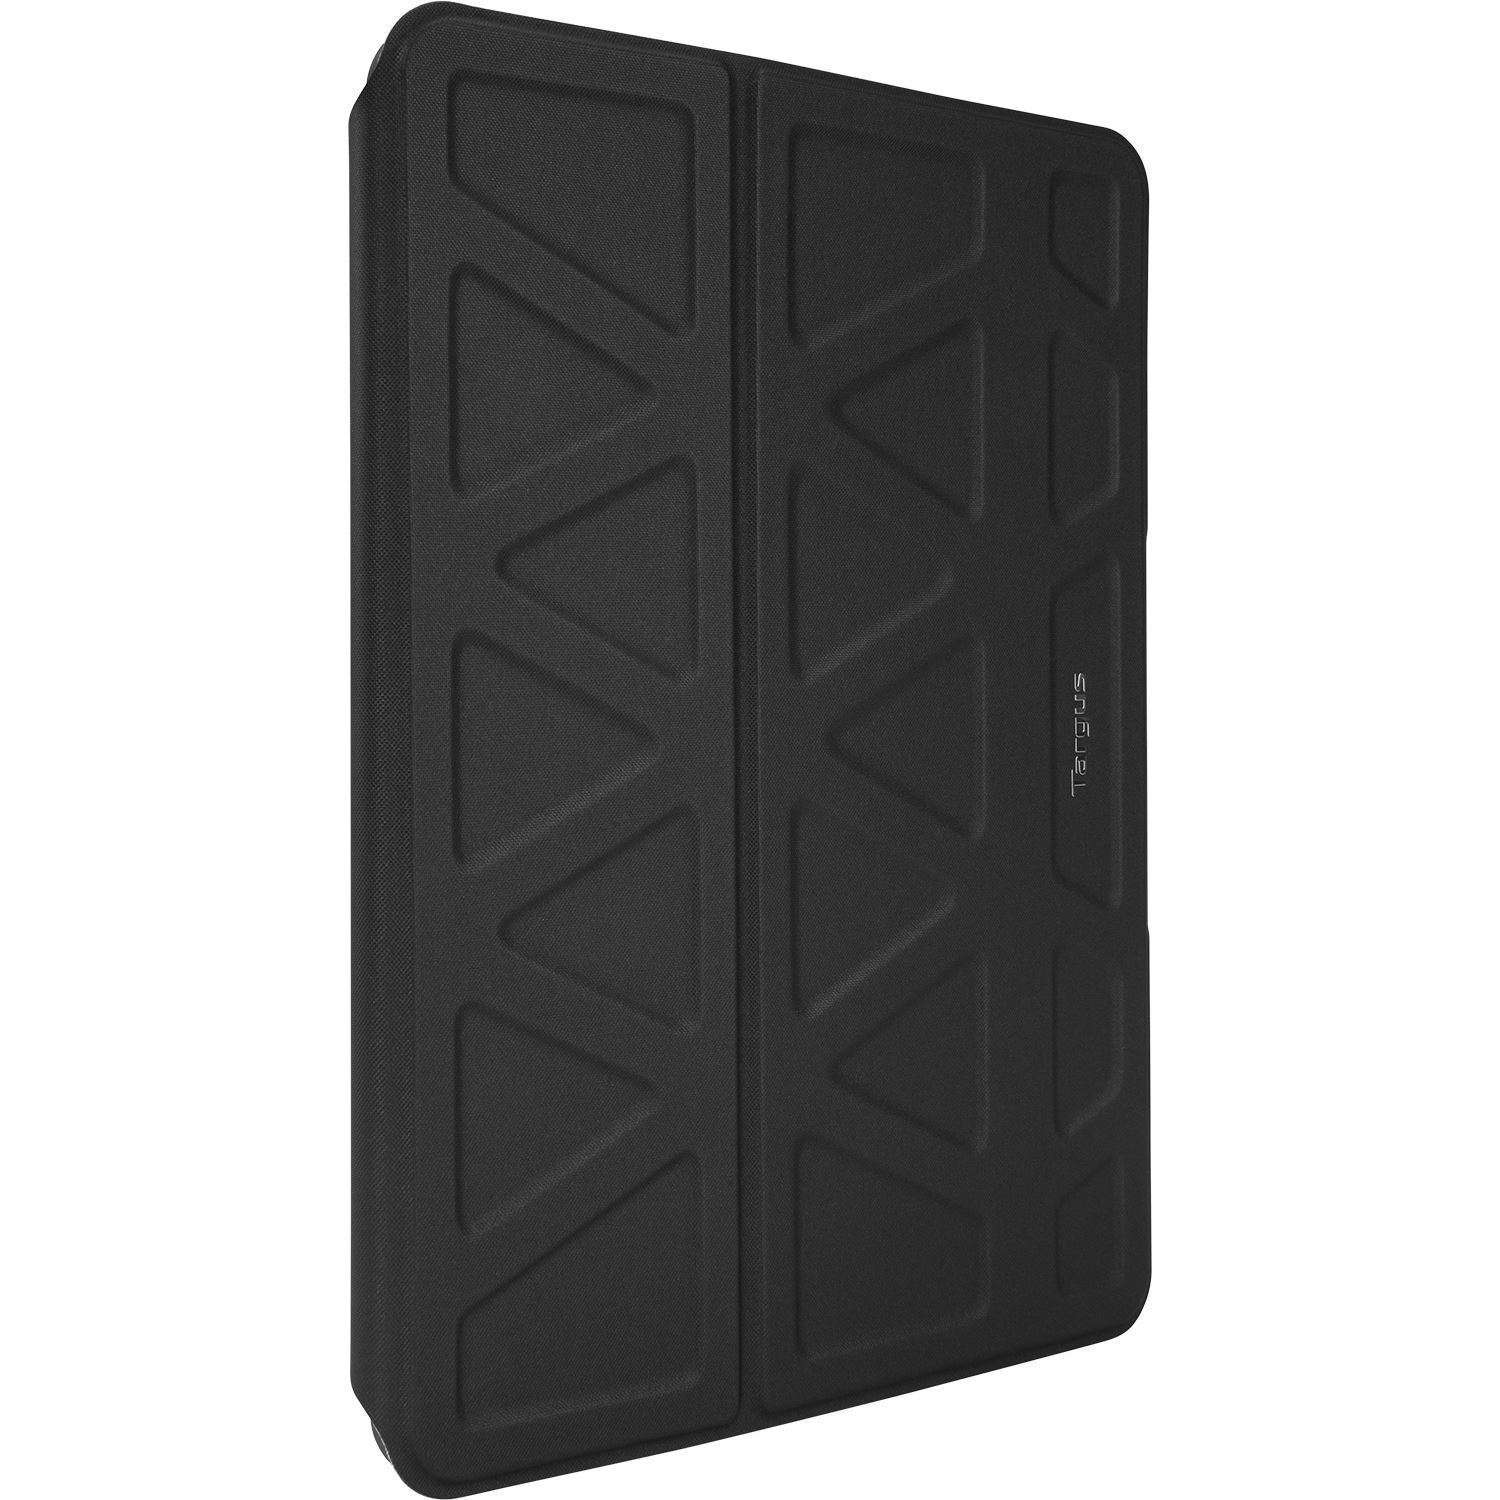 3D Protection Case (Black) - THZ635GL